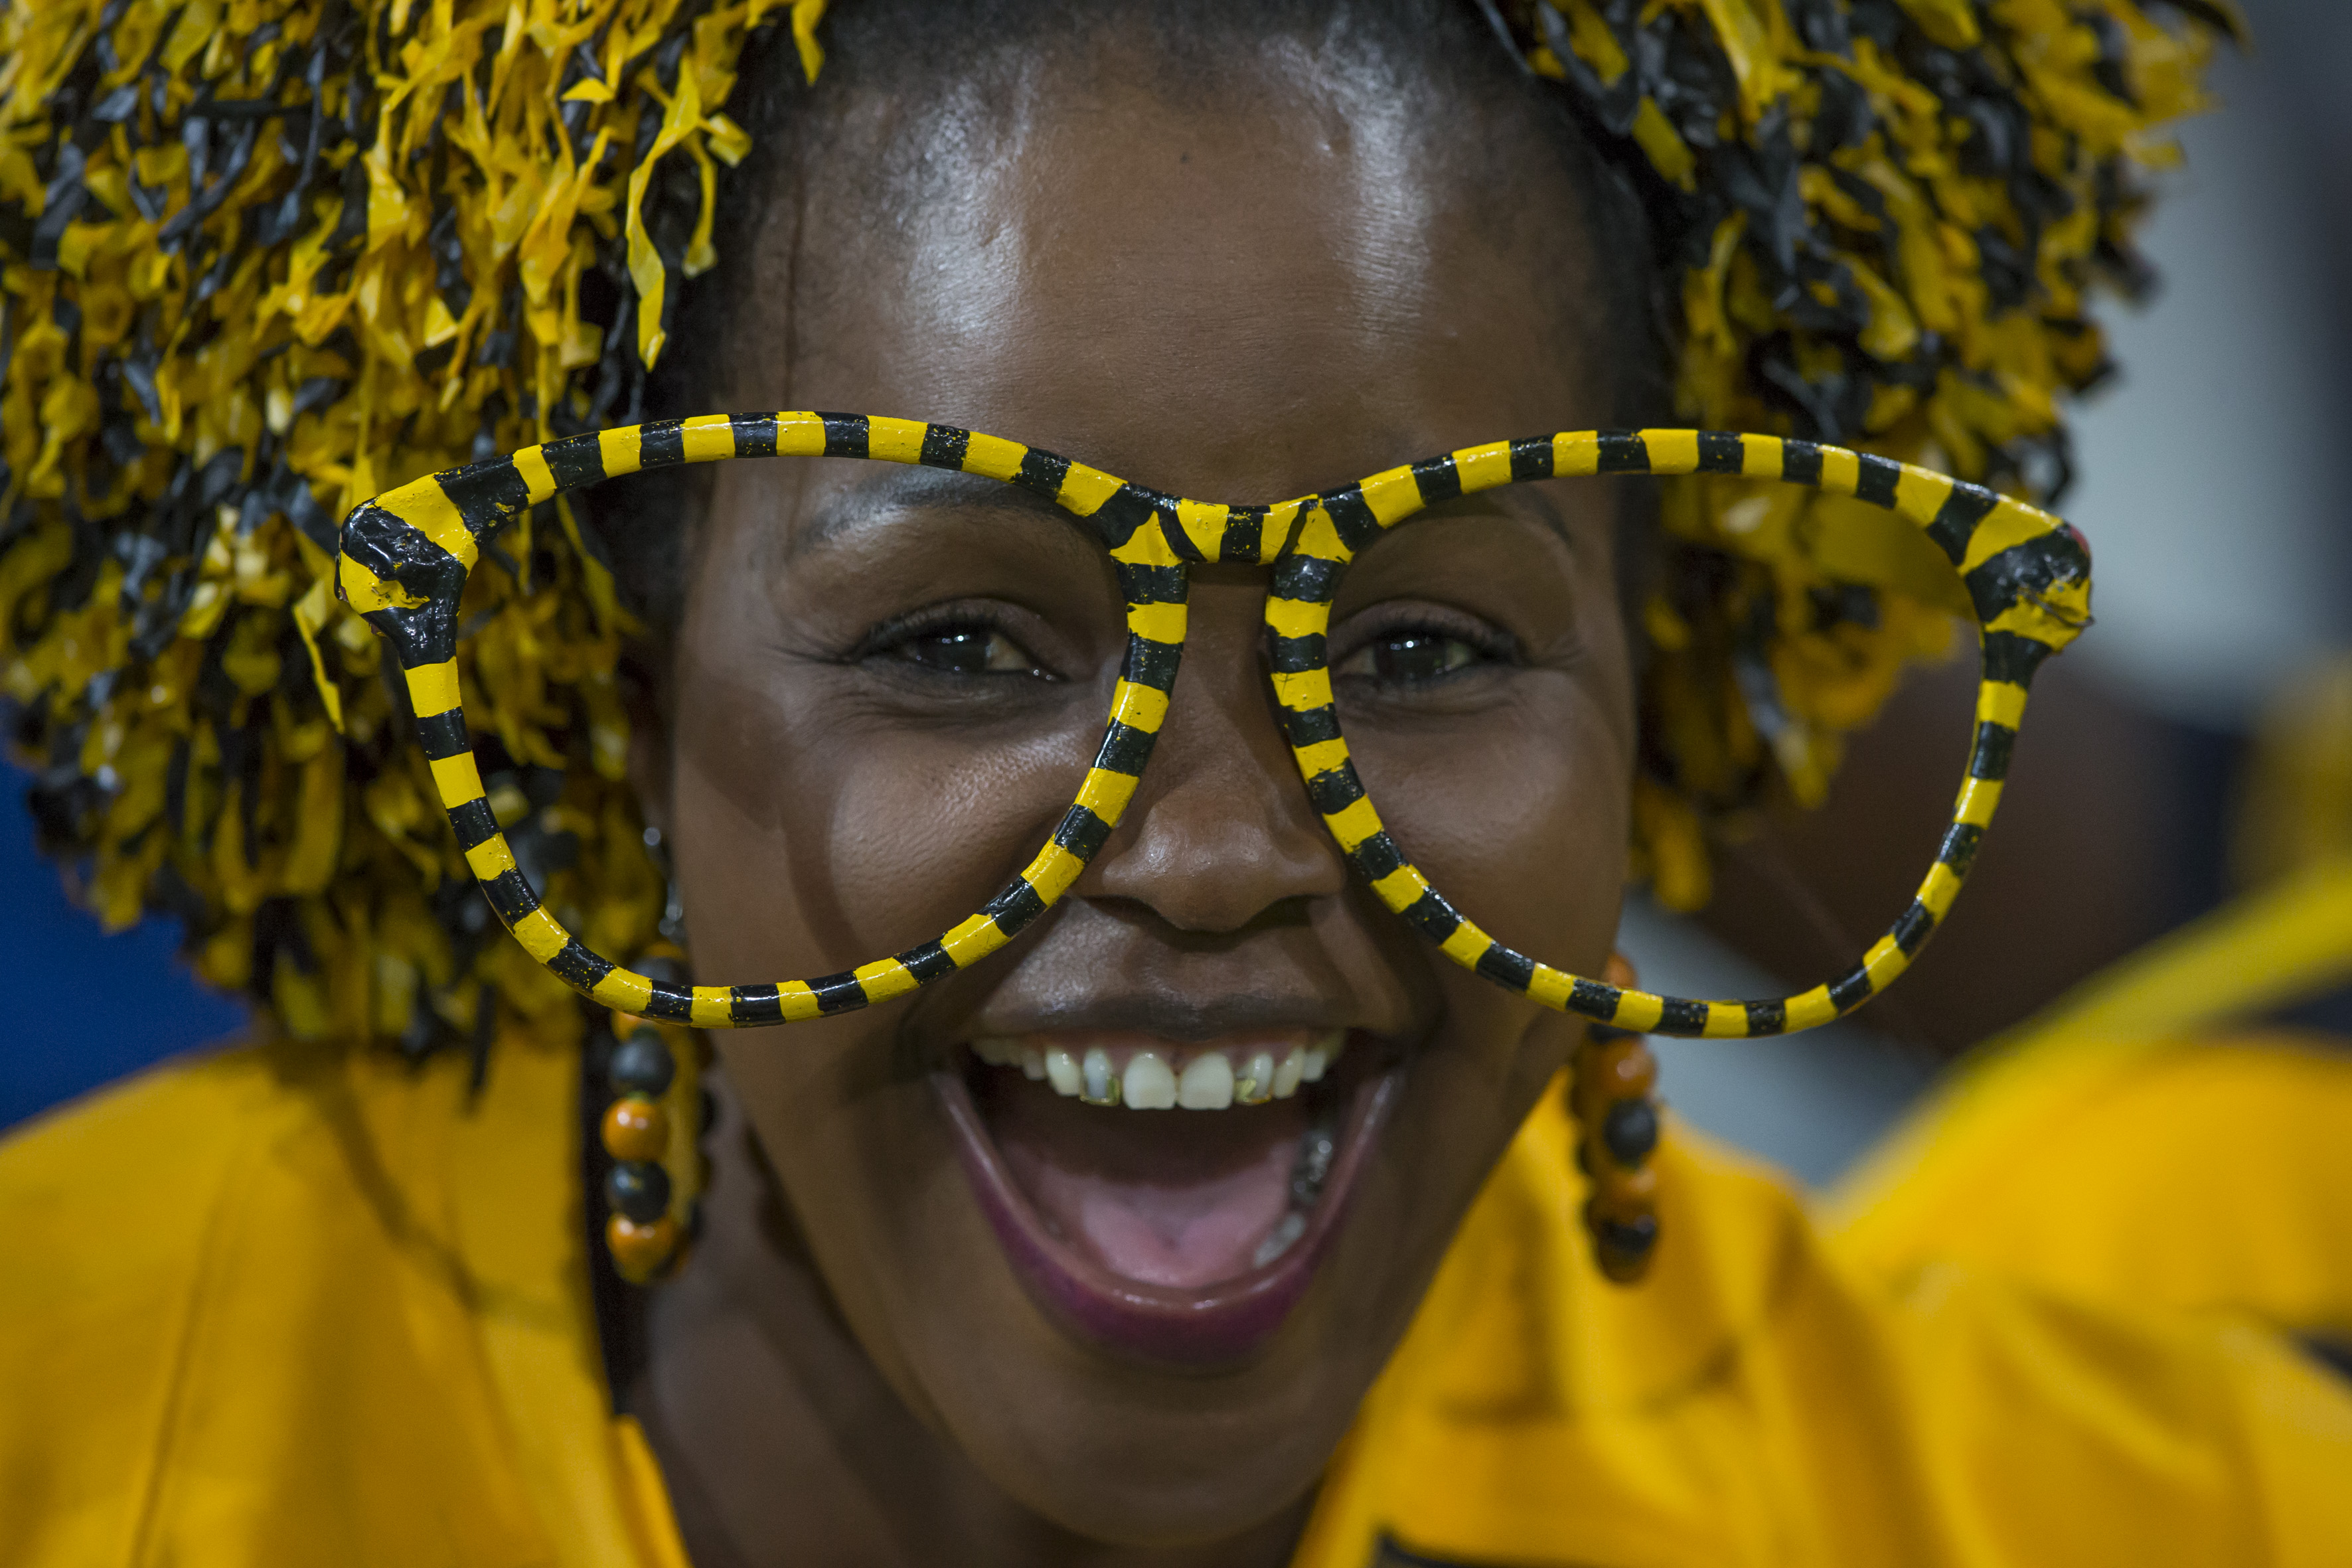 NELSPRUIT, SOUTH AFRICA - APRIL 15: Kaizer Chiefs Supporter during the Absa Premiership match between Kaizer Chiefs and Chippa United at Mbombela Stadium on April 15, 2017 in Nelspruit, South Africa. (Photo by Dirk Kotze/Gallo Images)